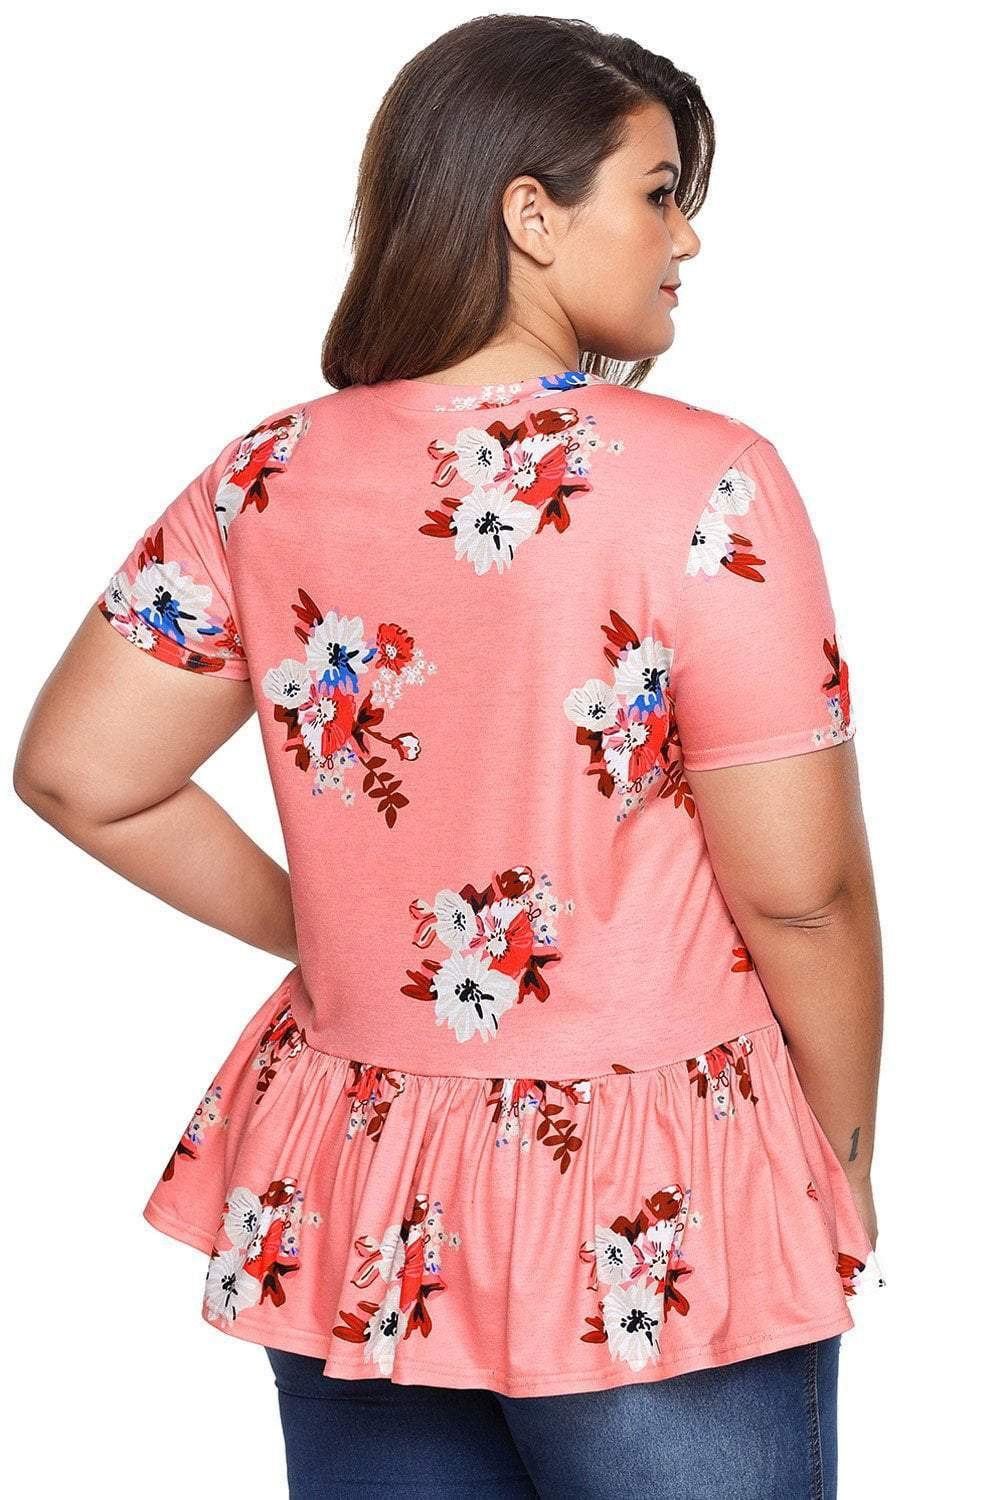 plus size T-Shirt XL / AUS 18 - 20 Gemma T-Shirt - CLEARANCE